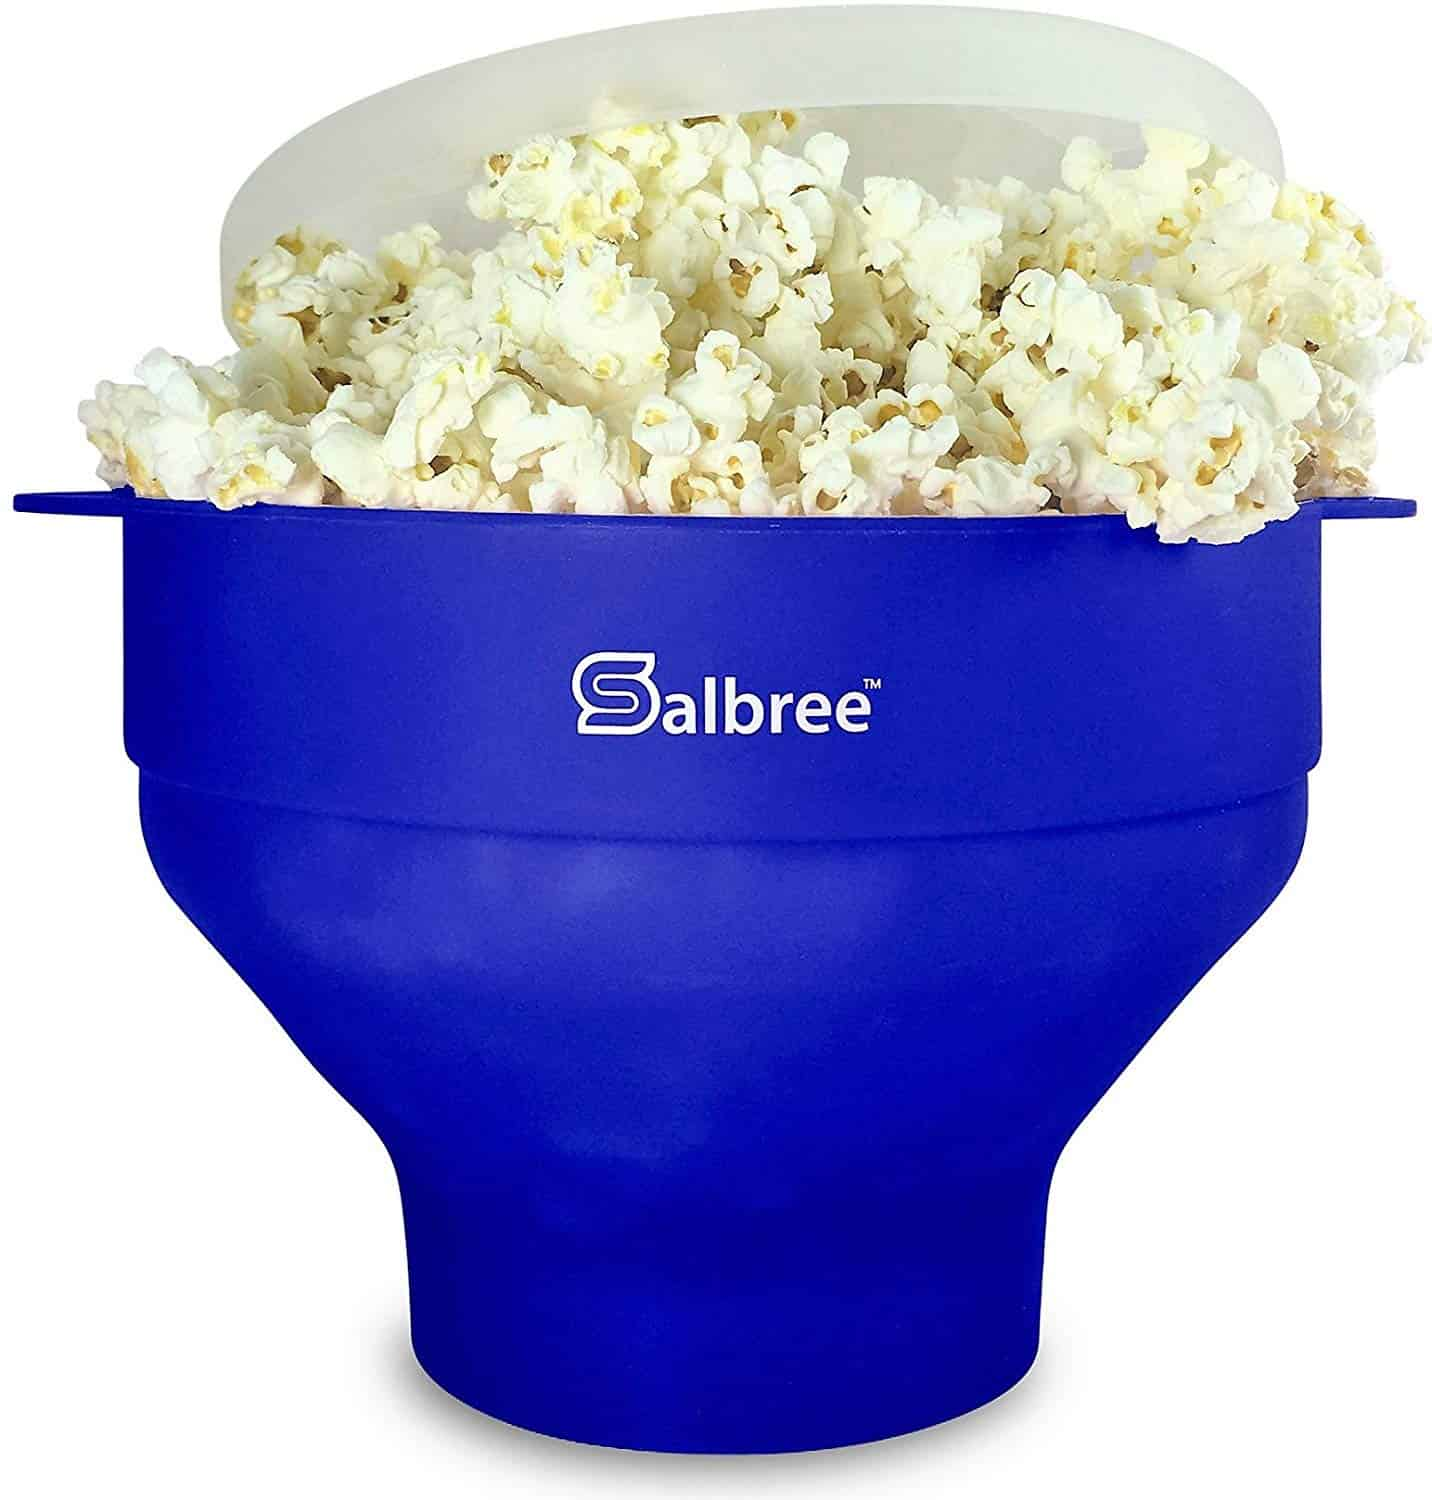 Salbree Silicone Popcorn Popper Review